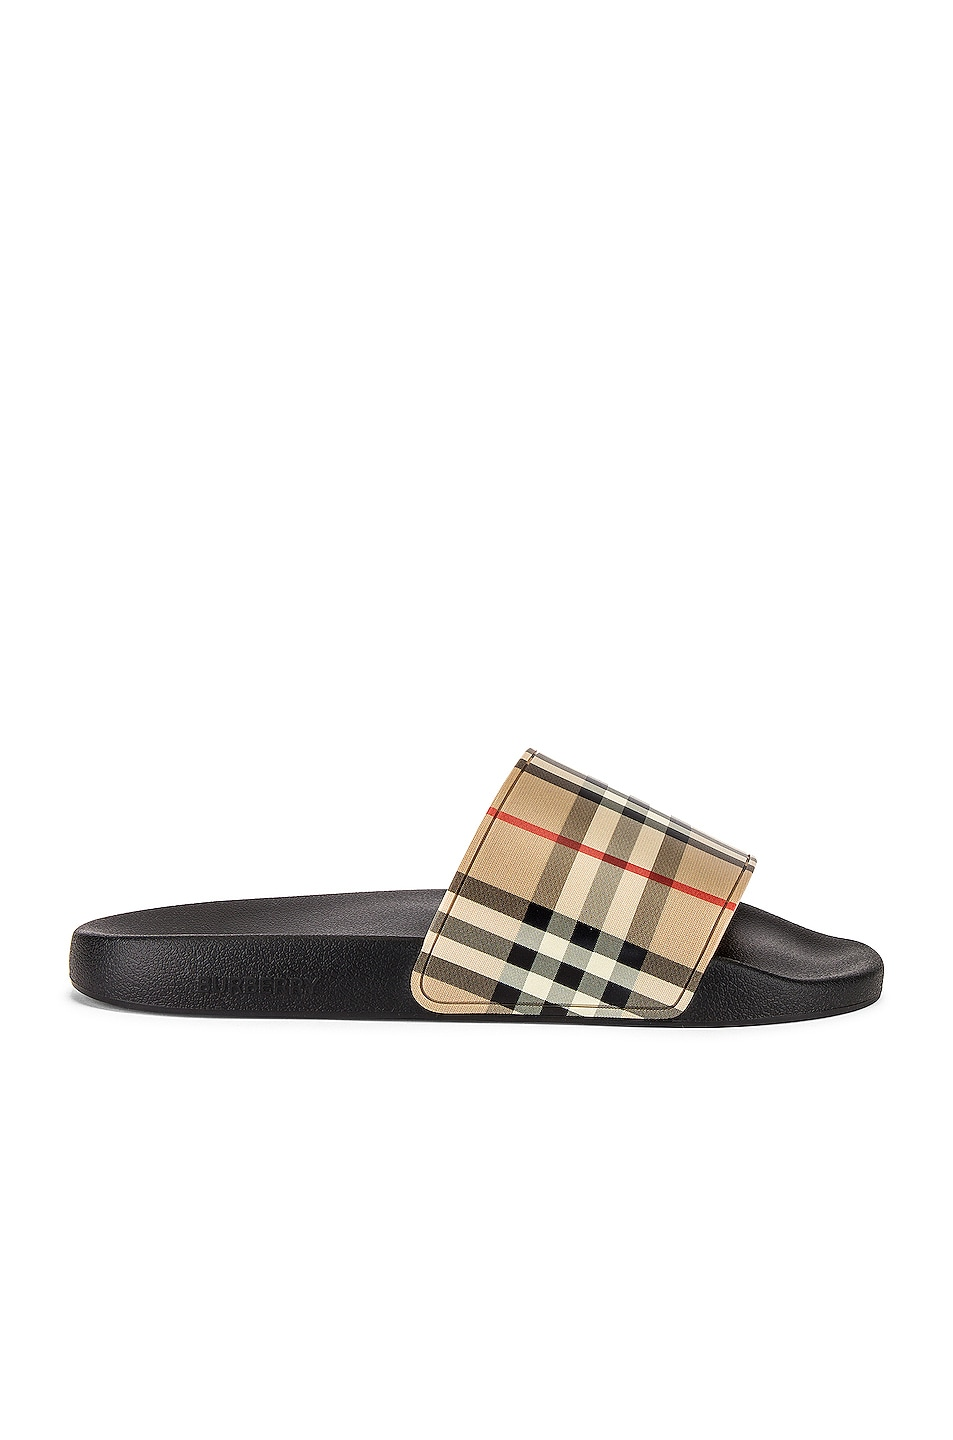 Image 1 of Burberry Furley M Check Slide in Archive Beige